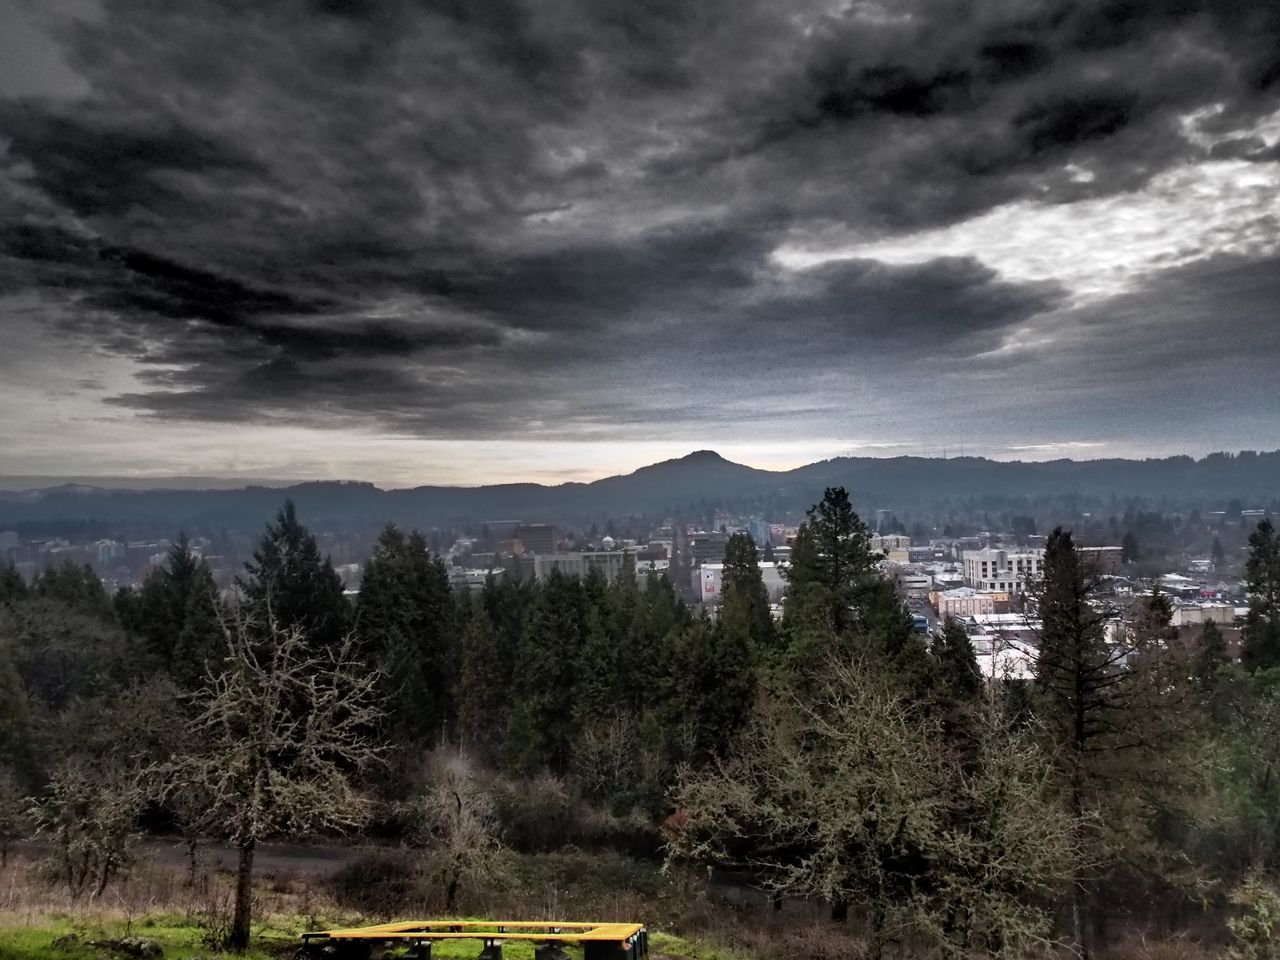 Stopped on the way to work today for this iconic view across Eugene, Oregon from Skinner's Butte to Spencer's Butte on a winter day.Spencer's ButteeEugene Oregonn Eye Em Nature Lover Stormy Weather My Commute